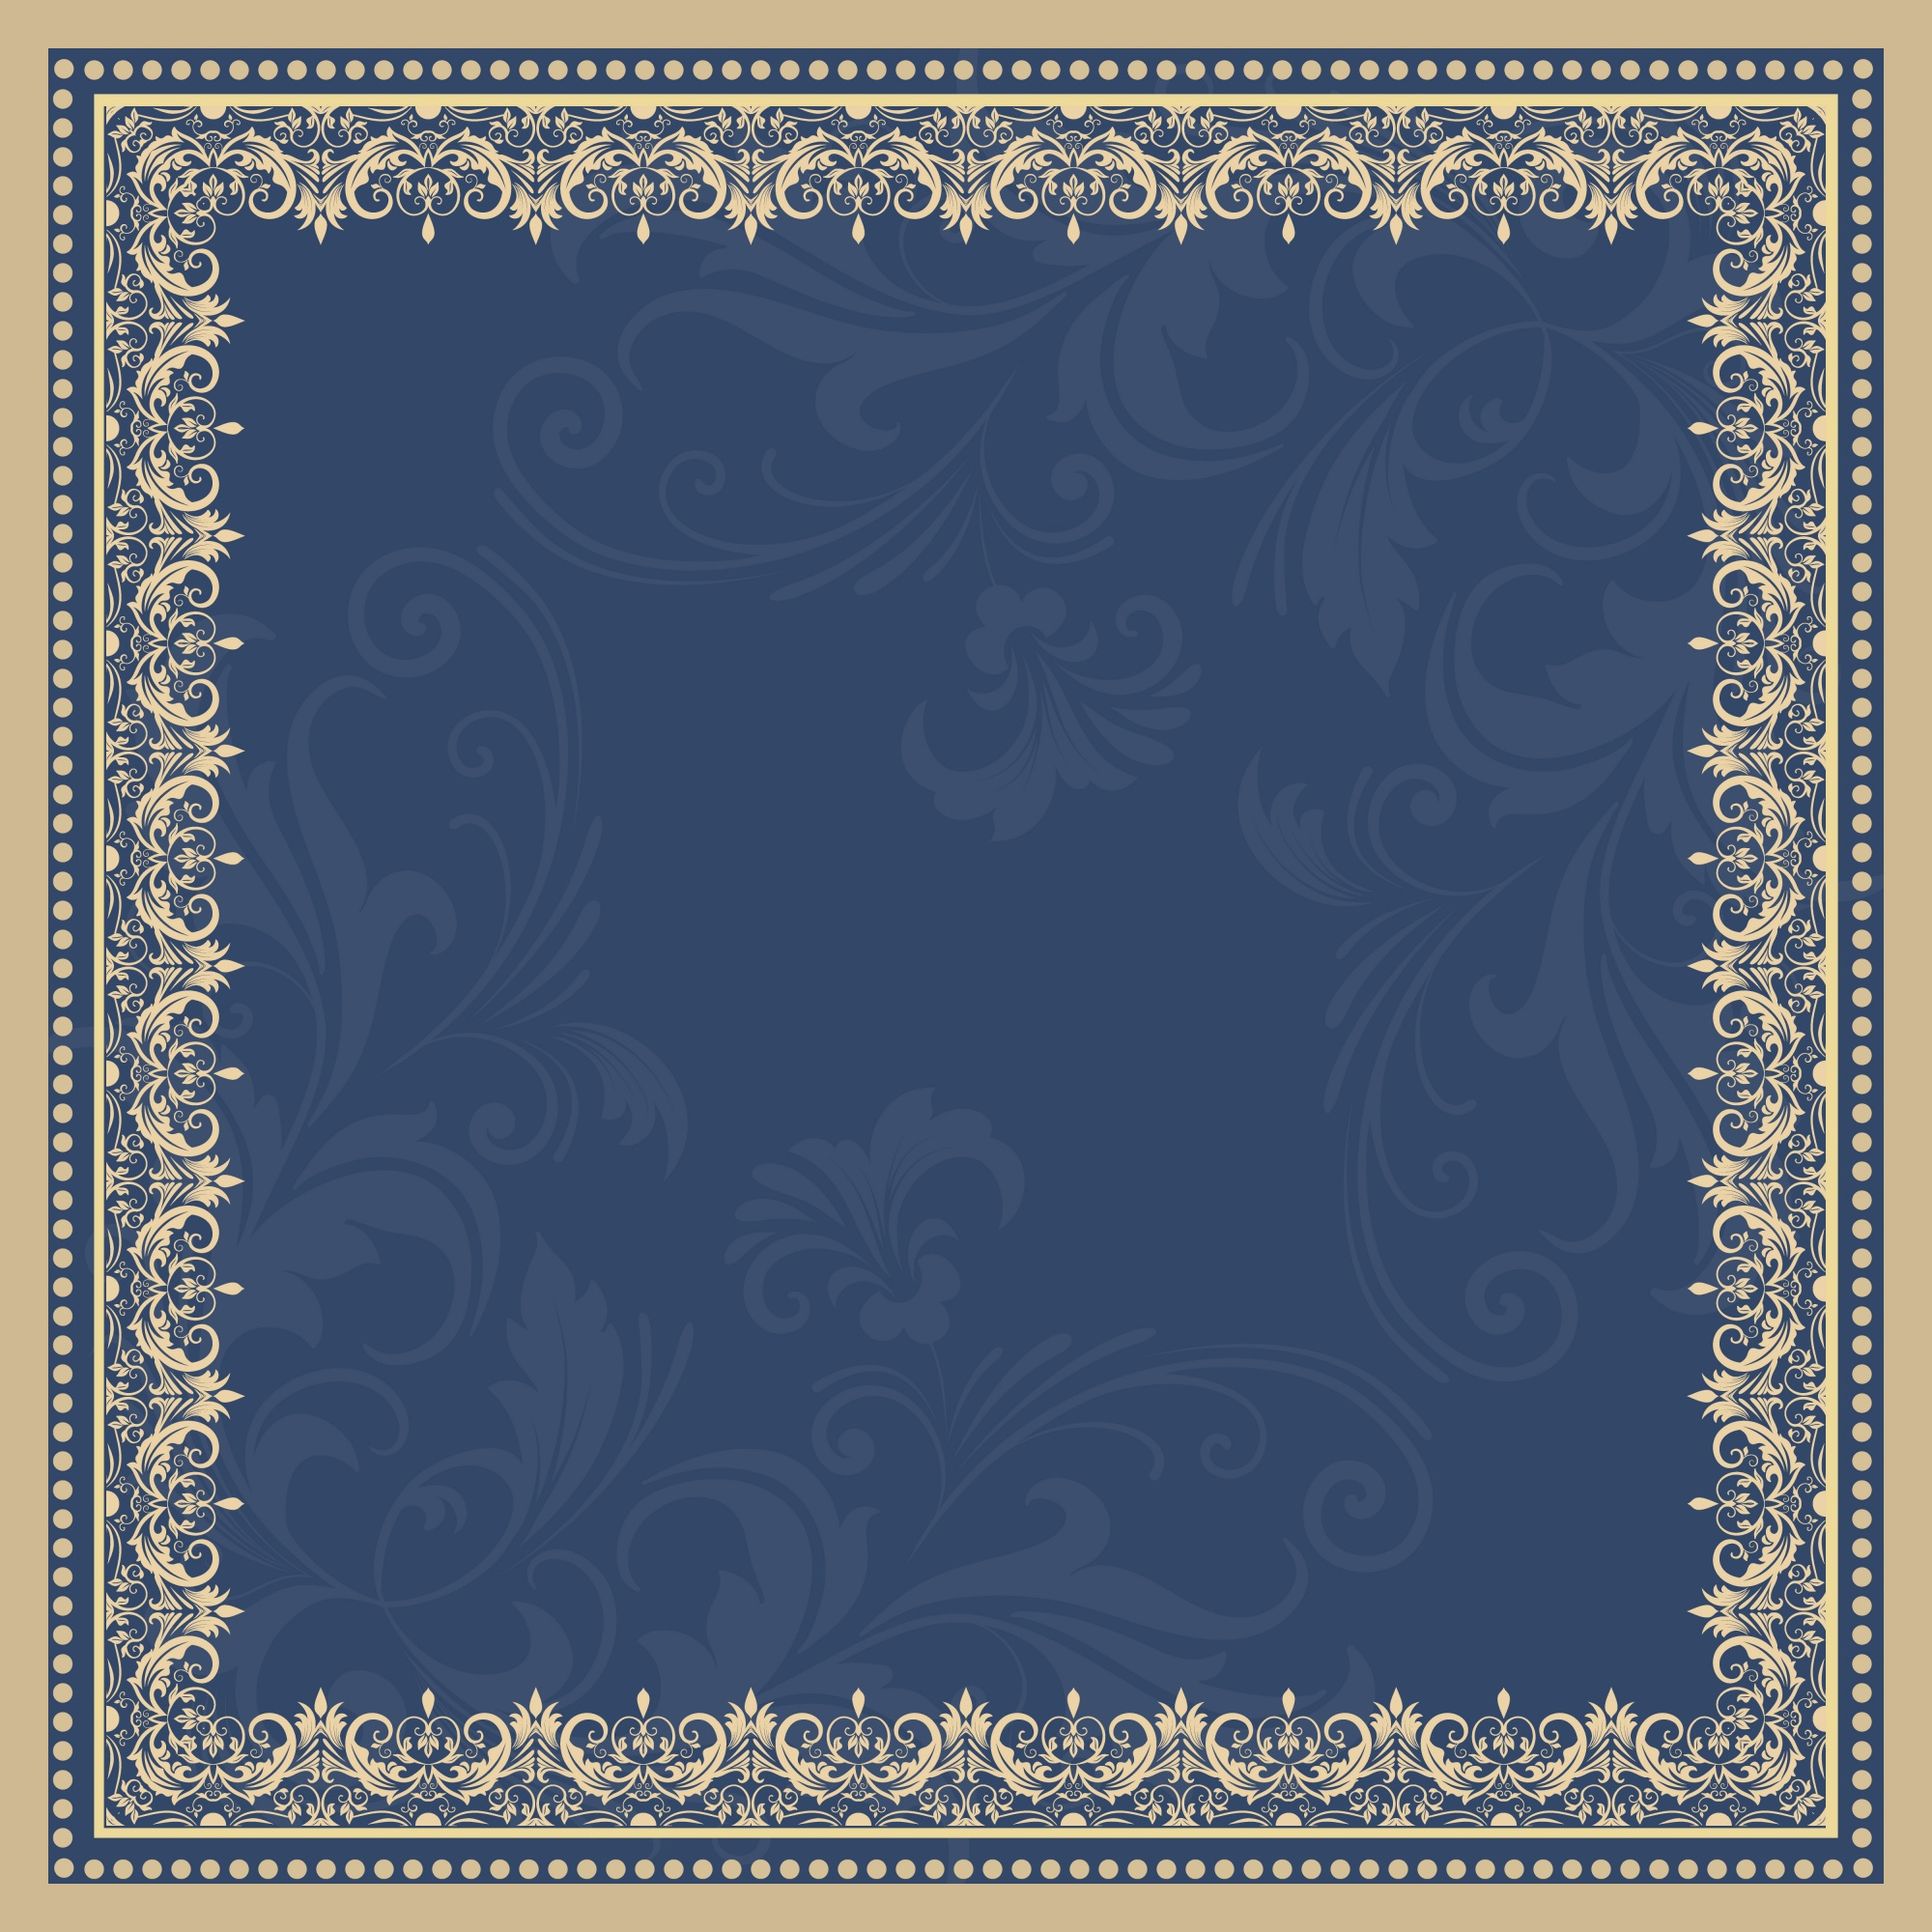 Vector fine floral square frame. Decorative element for invitations and cards. Border element